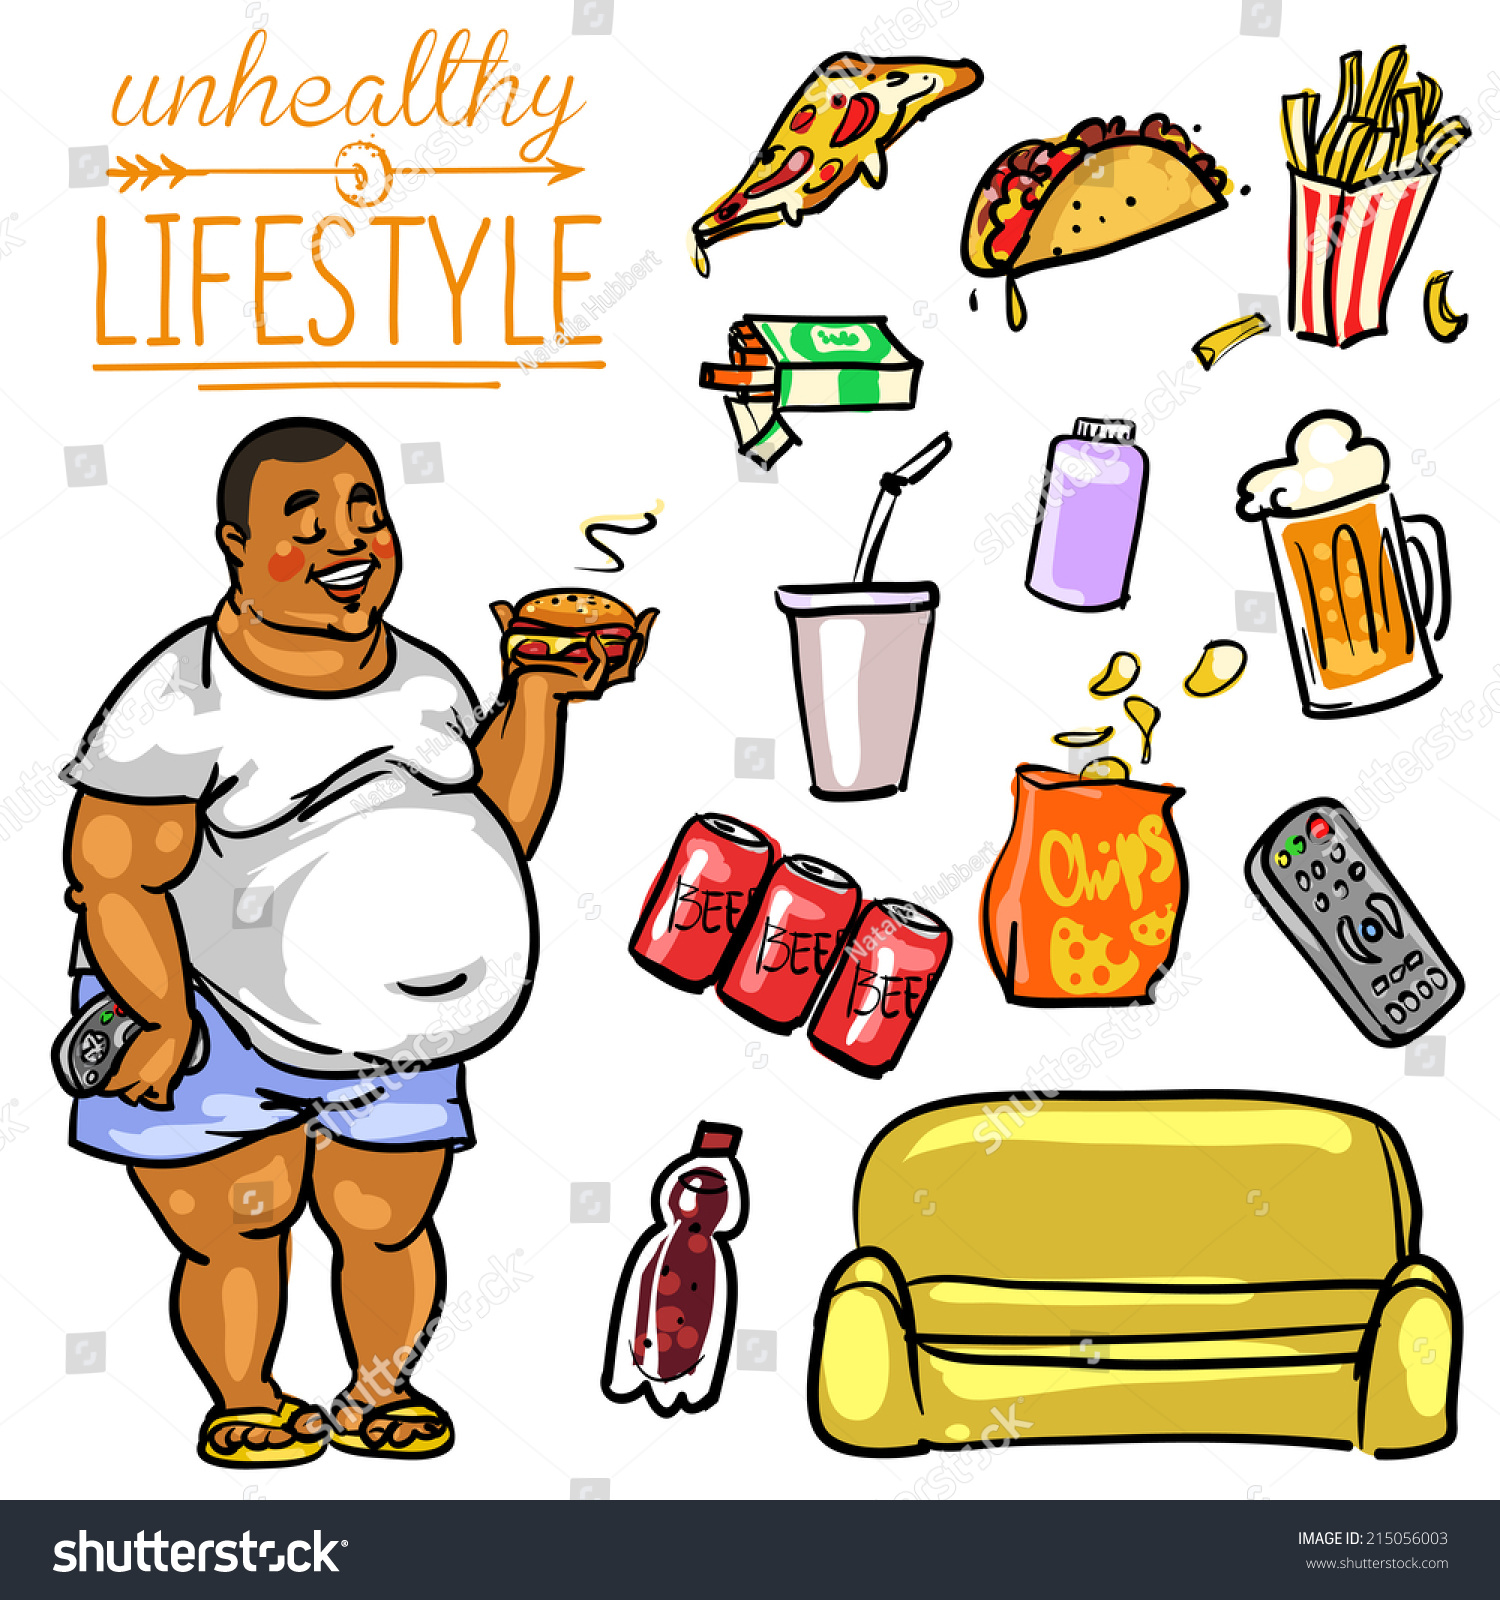 unhealthy lifestyle images